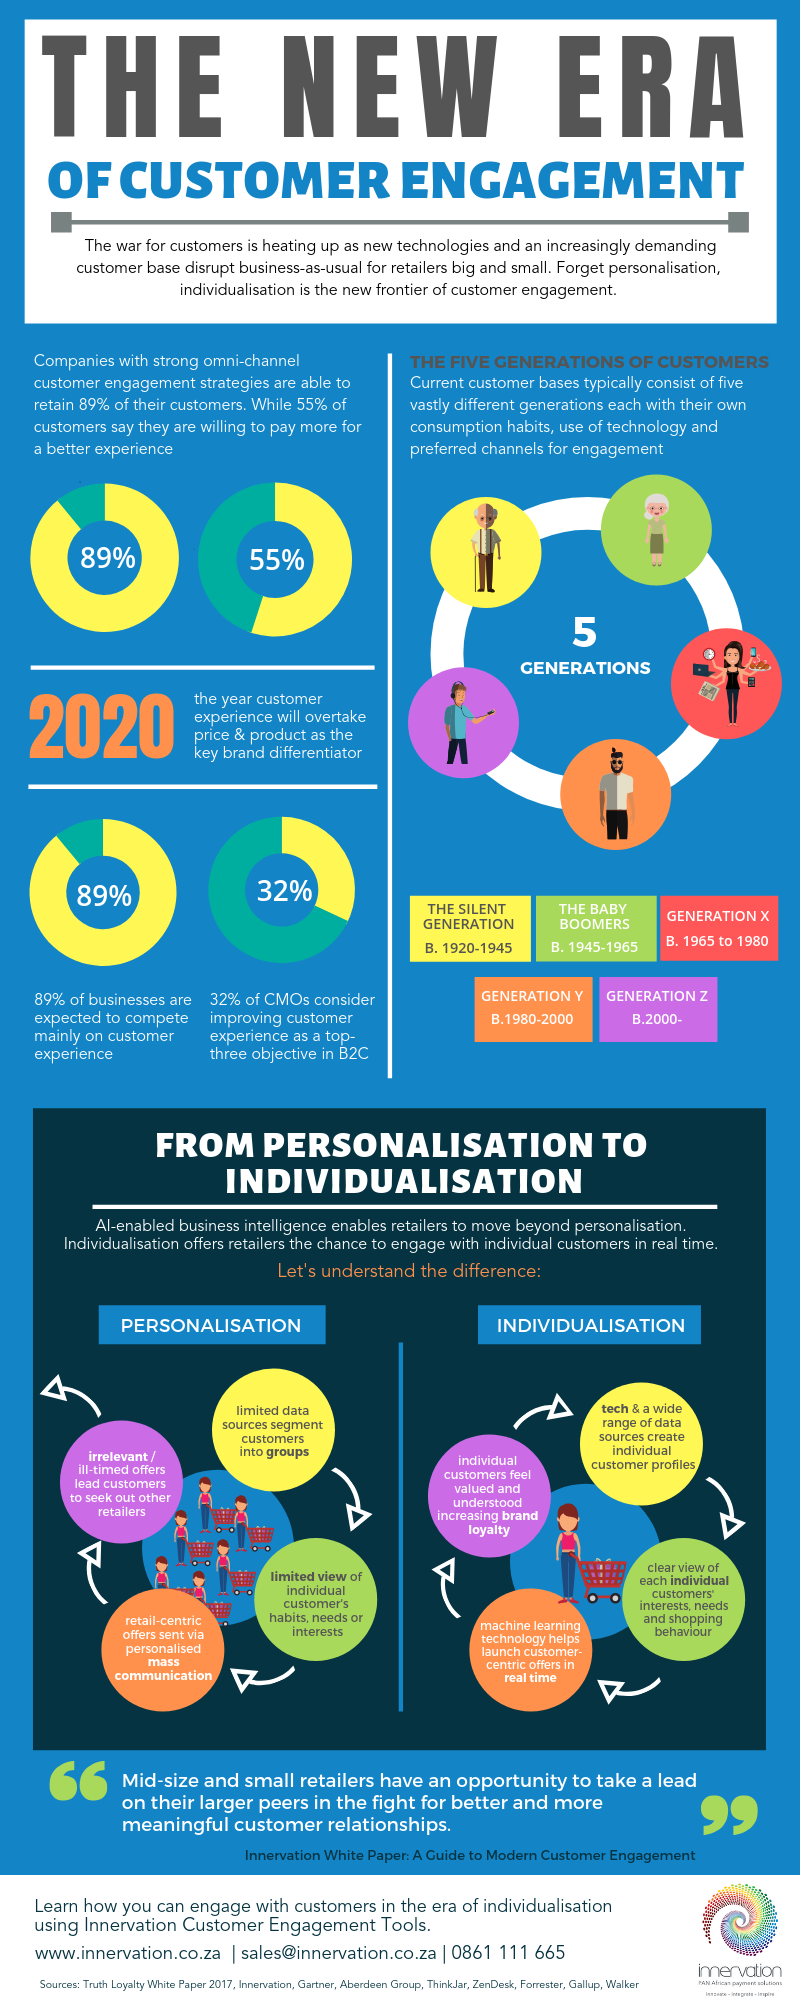 Innervation Customer Engagement Infographic